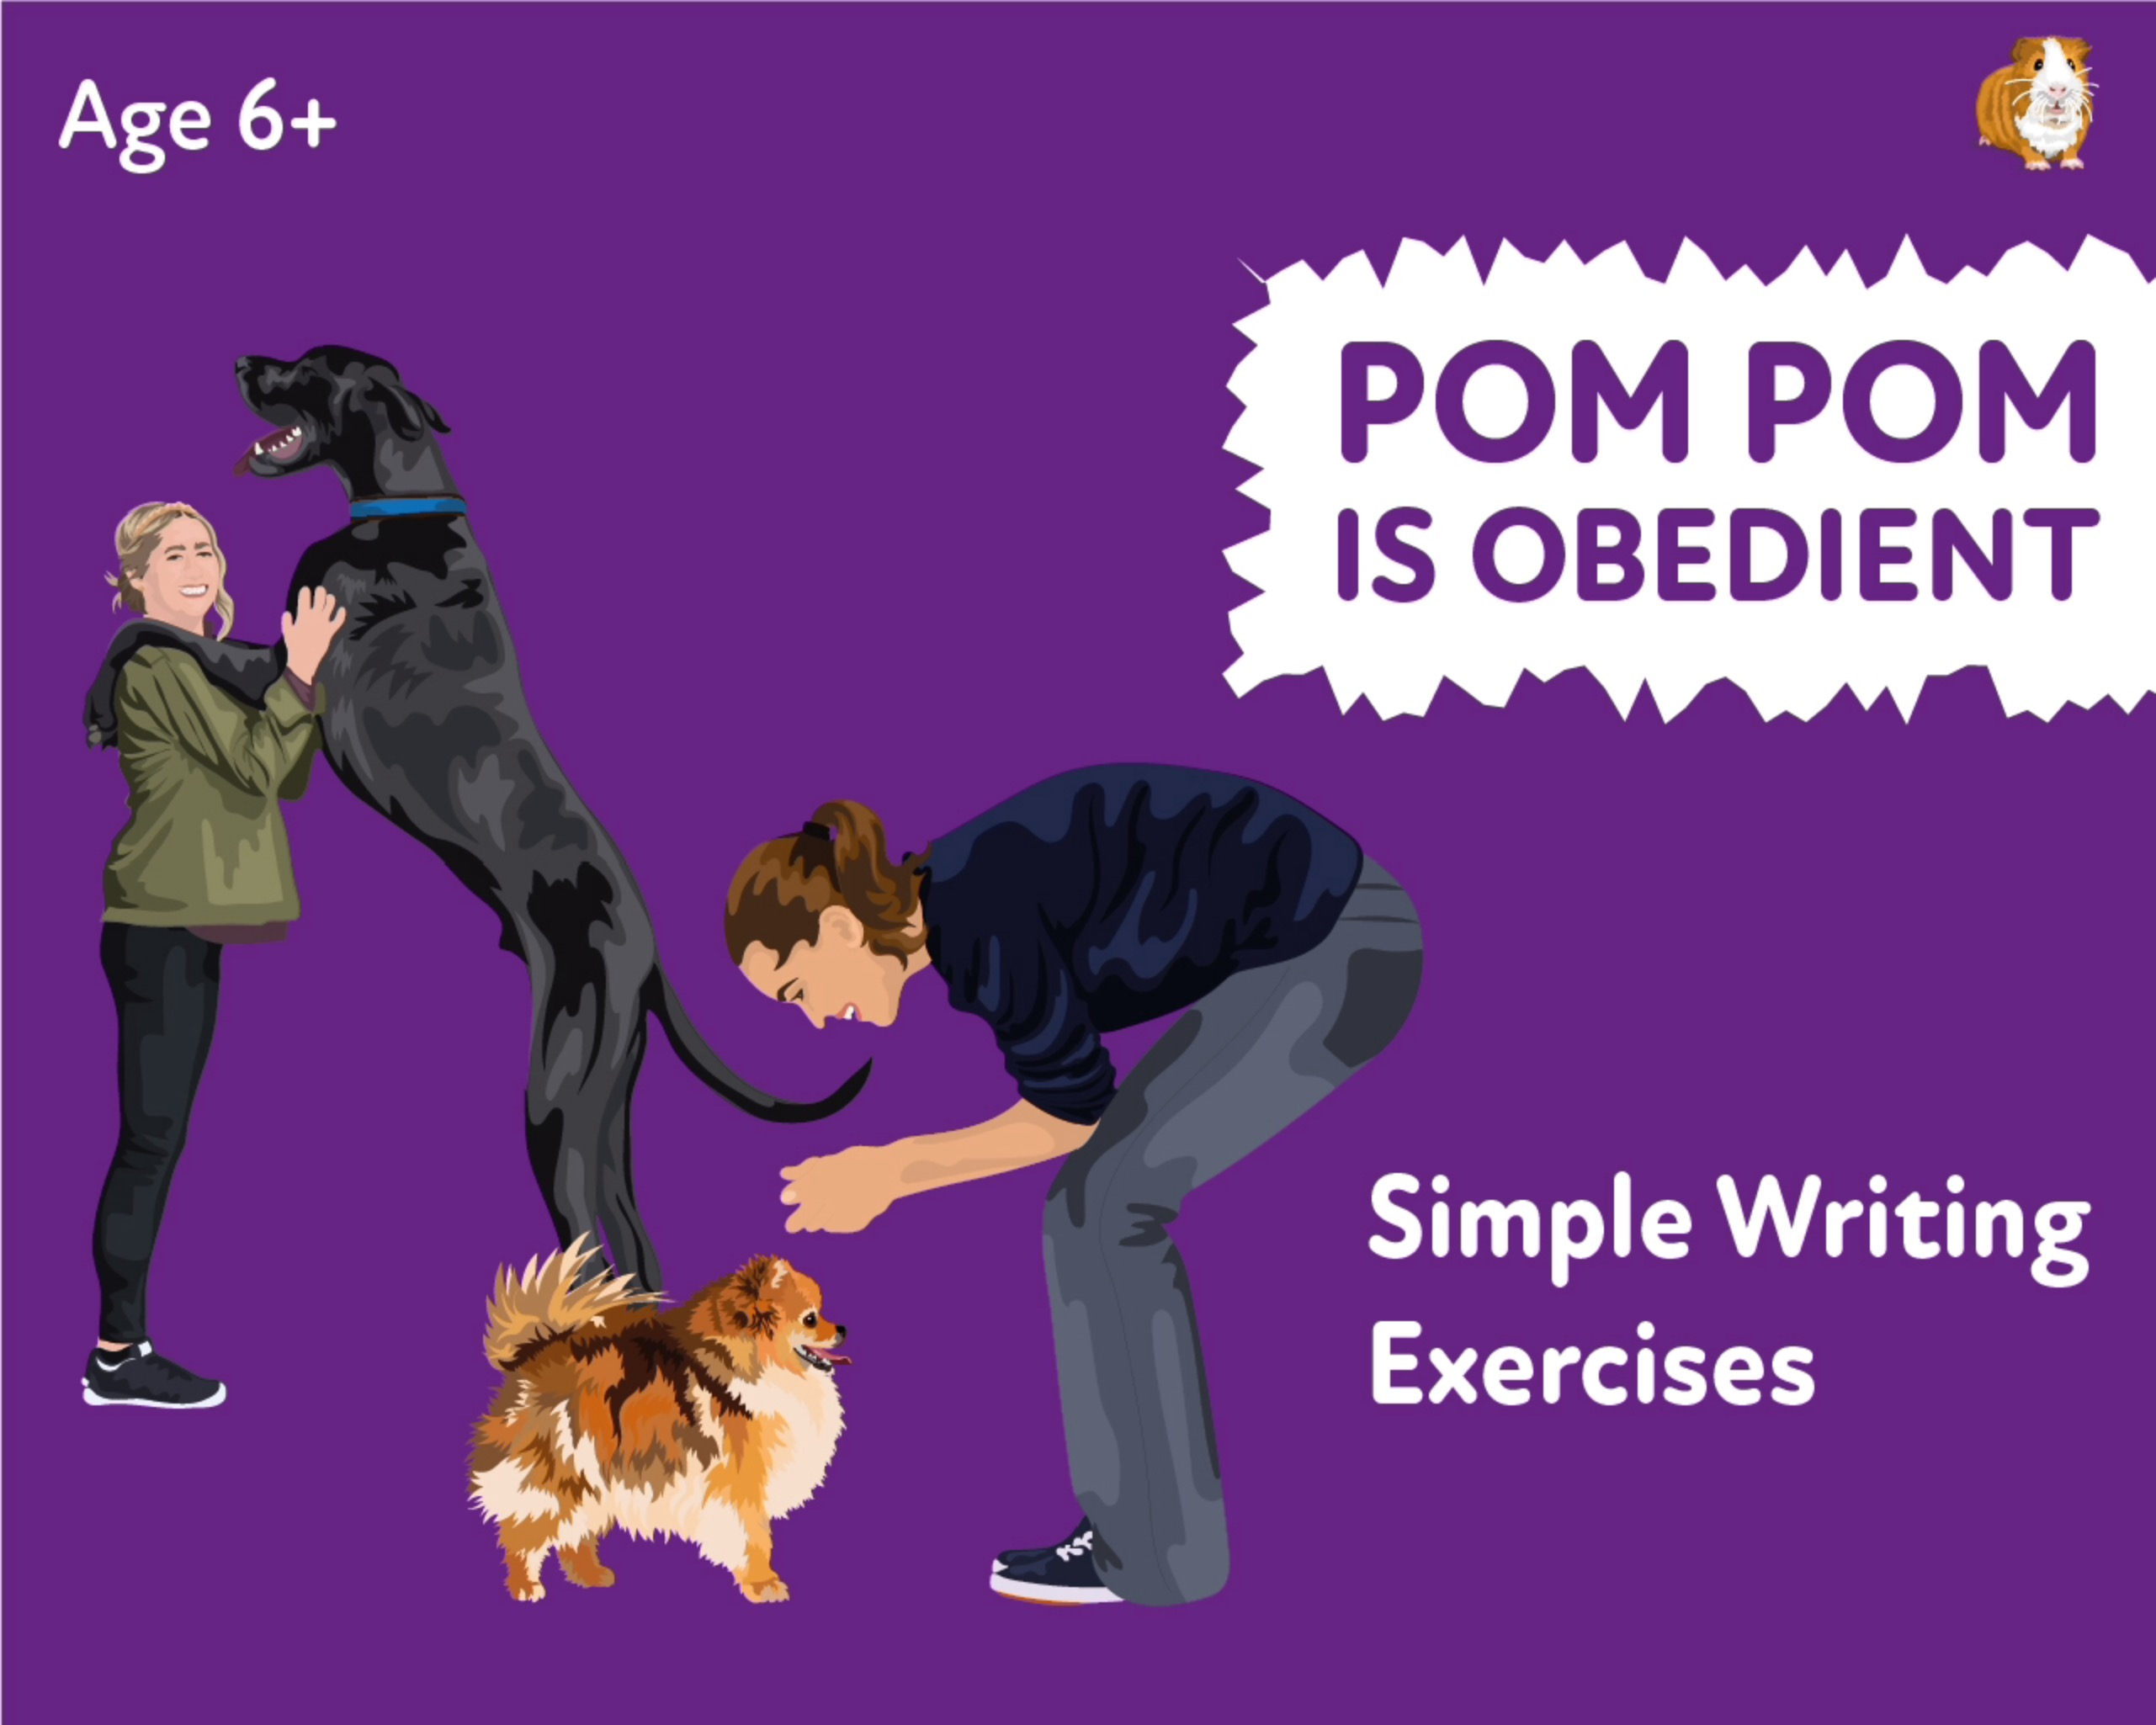 'Pom Pom Is Obedient' A Fun Writing And Drawing Activity (6 years +)